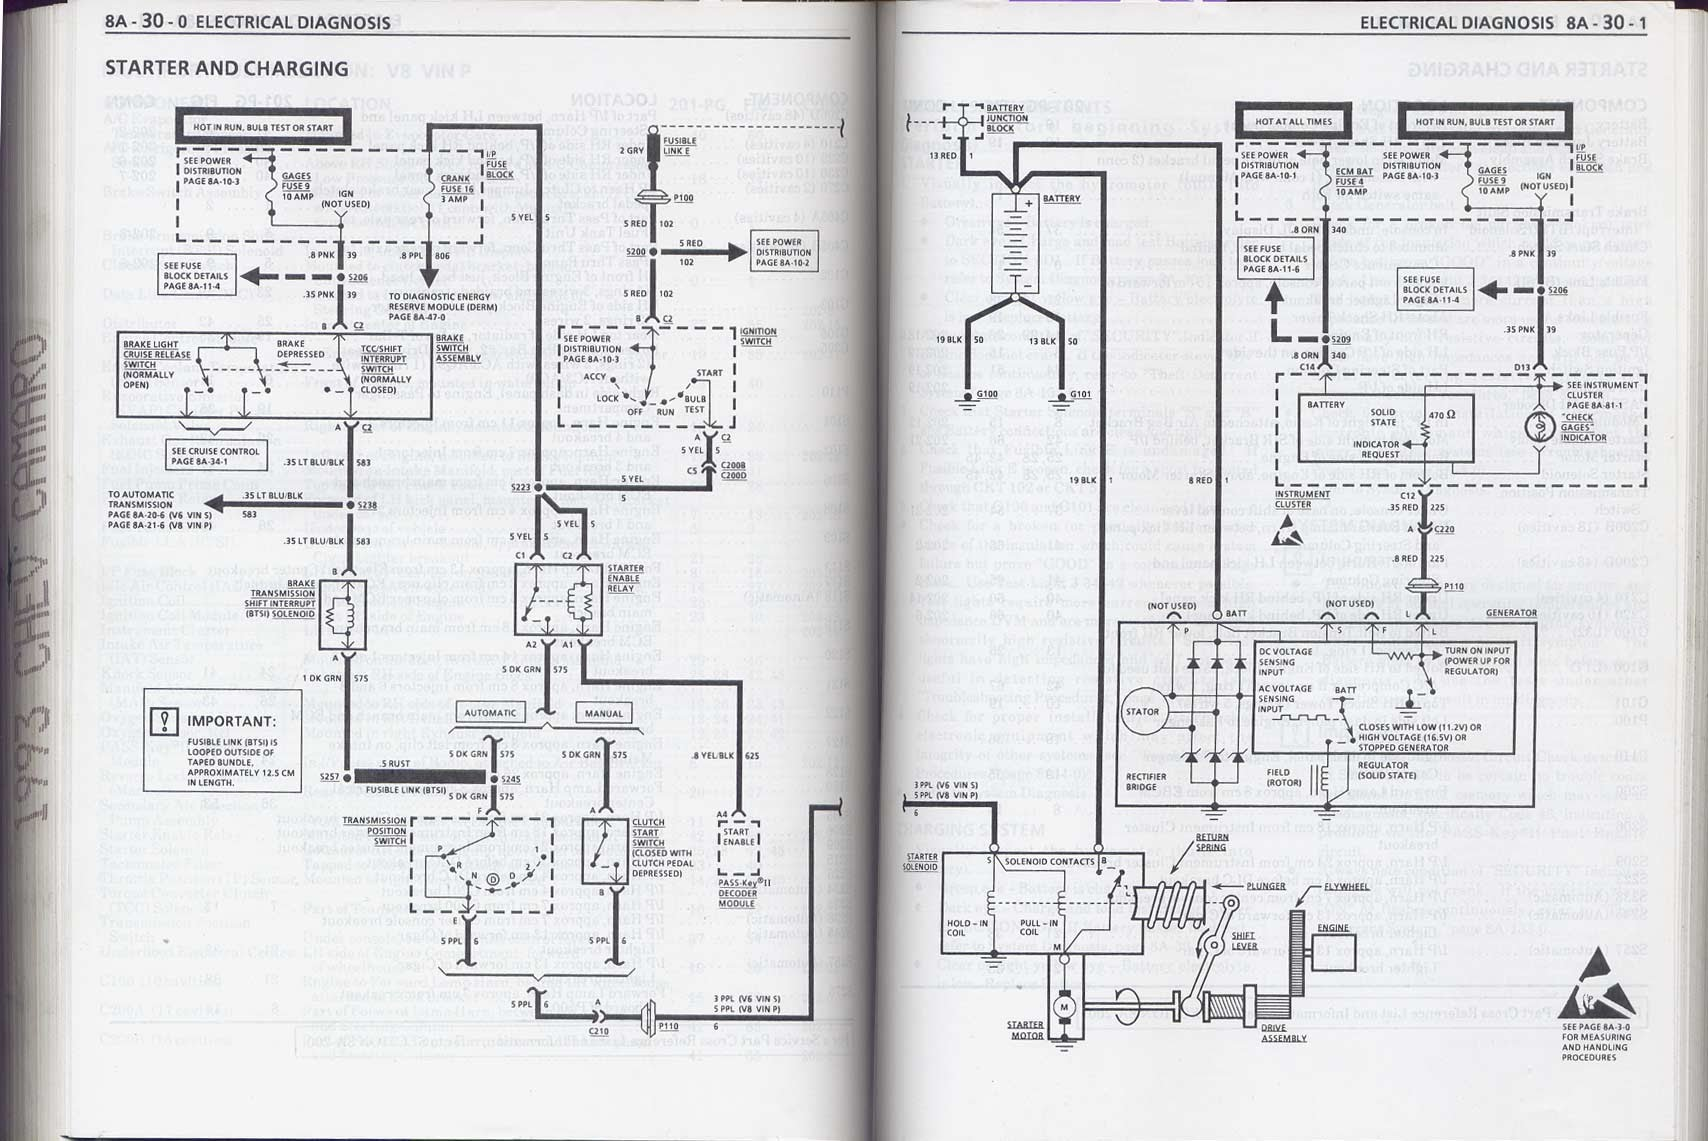 4l60e wiring volvo diagrams v70 th400 trans diagram free engine image for